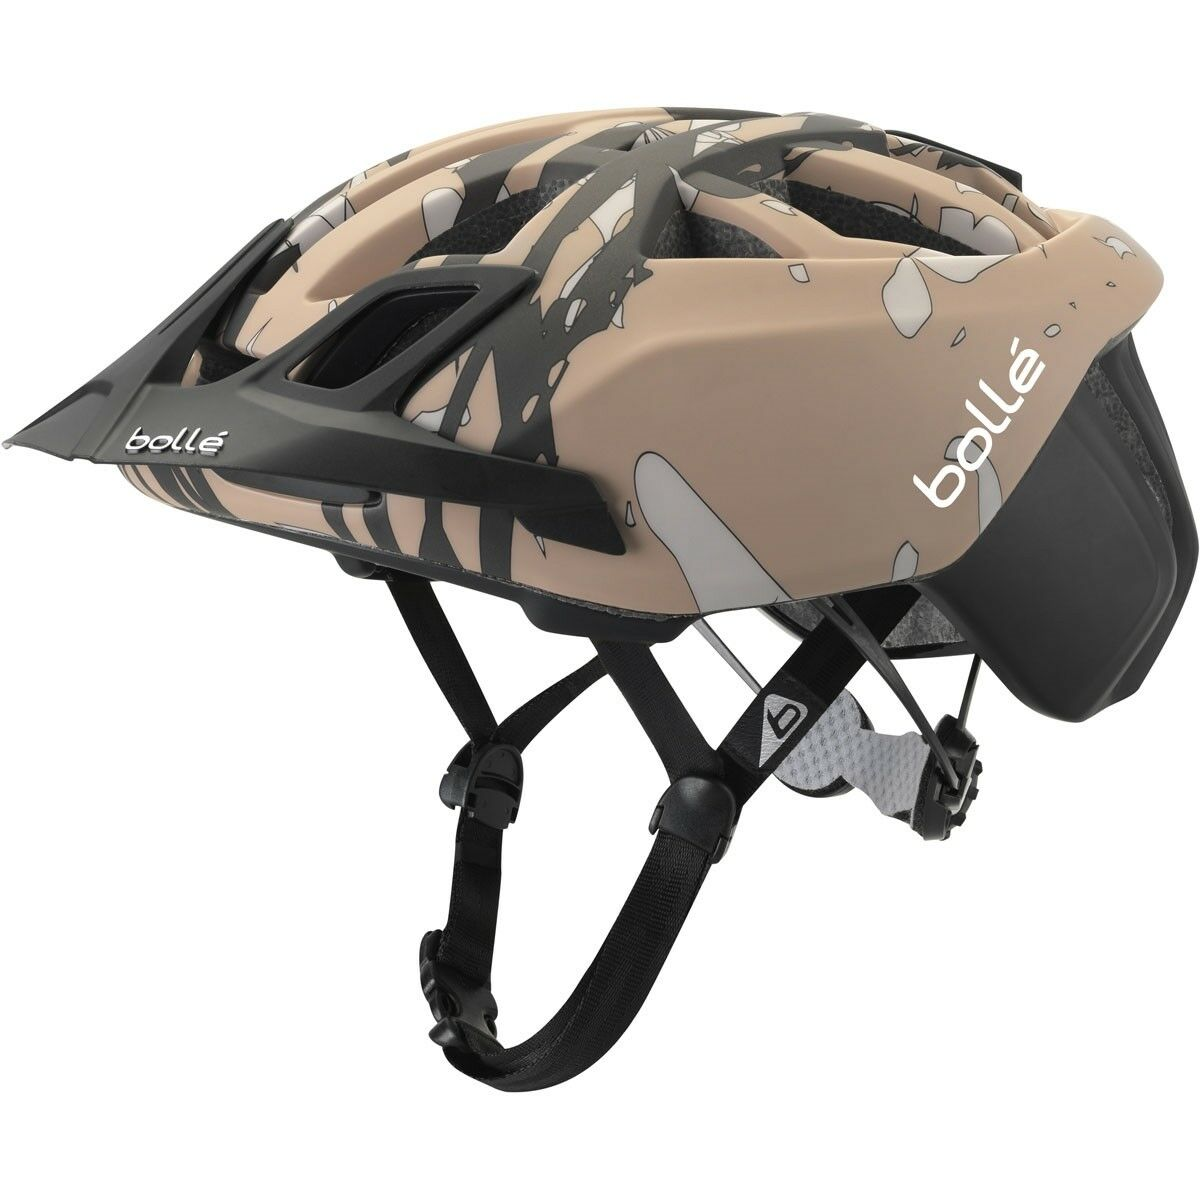 Bolle The One Mountain  Cycling Helmet  unique shape